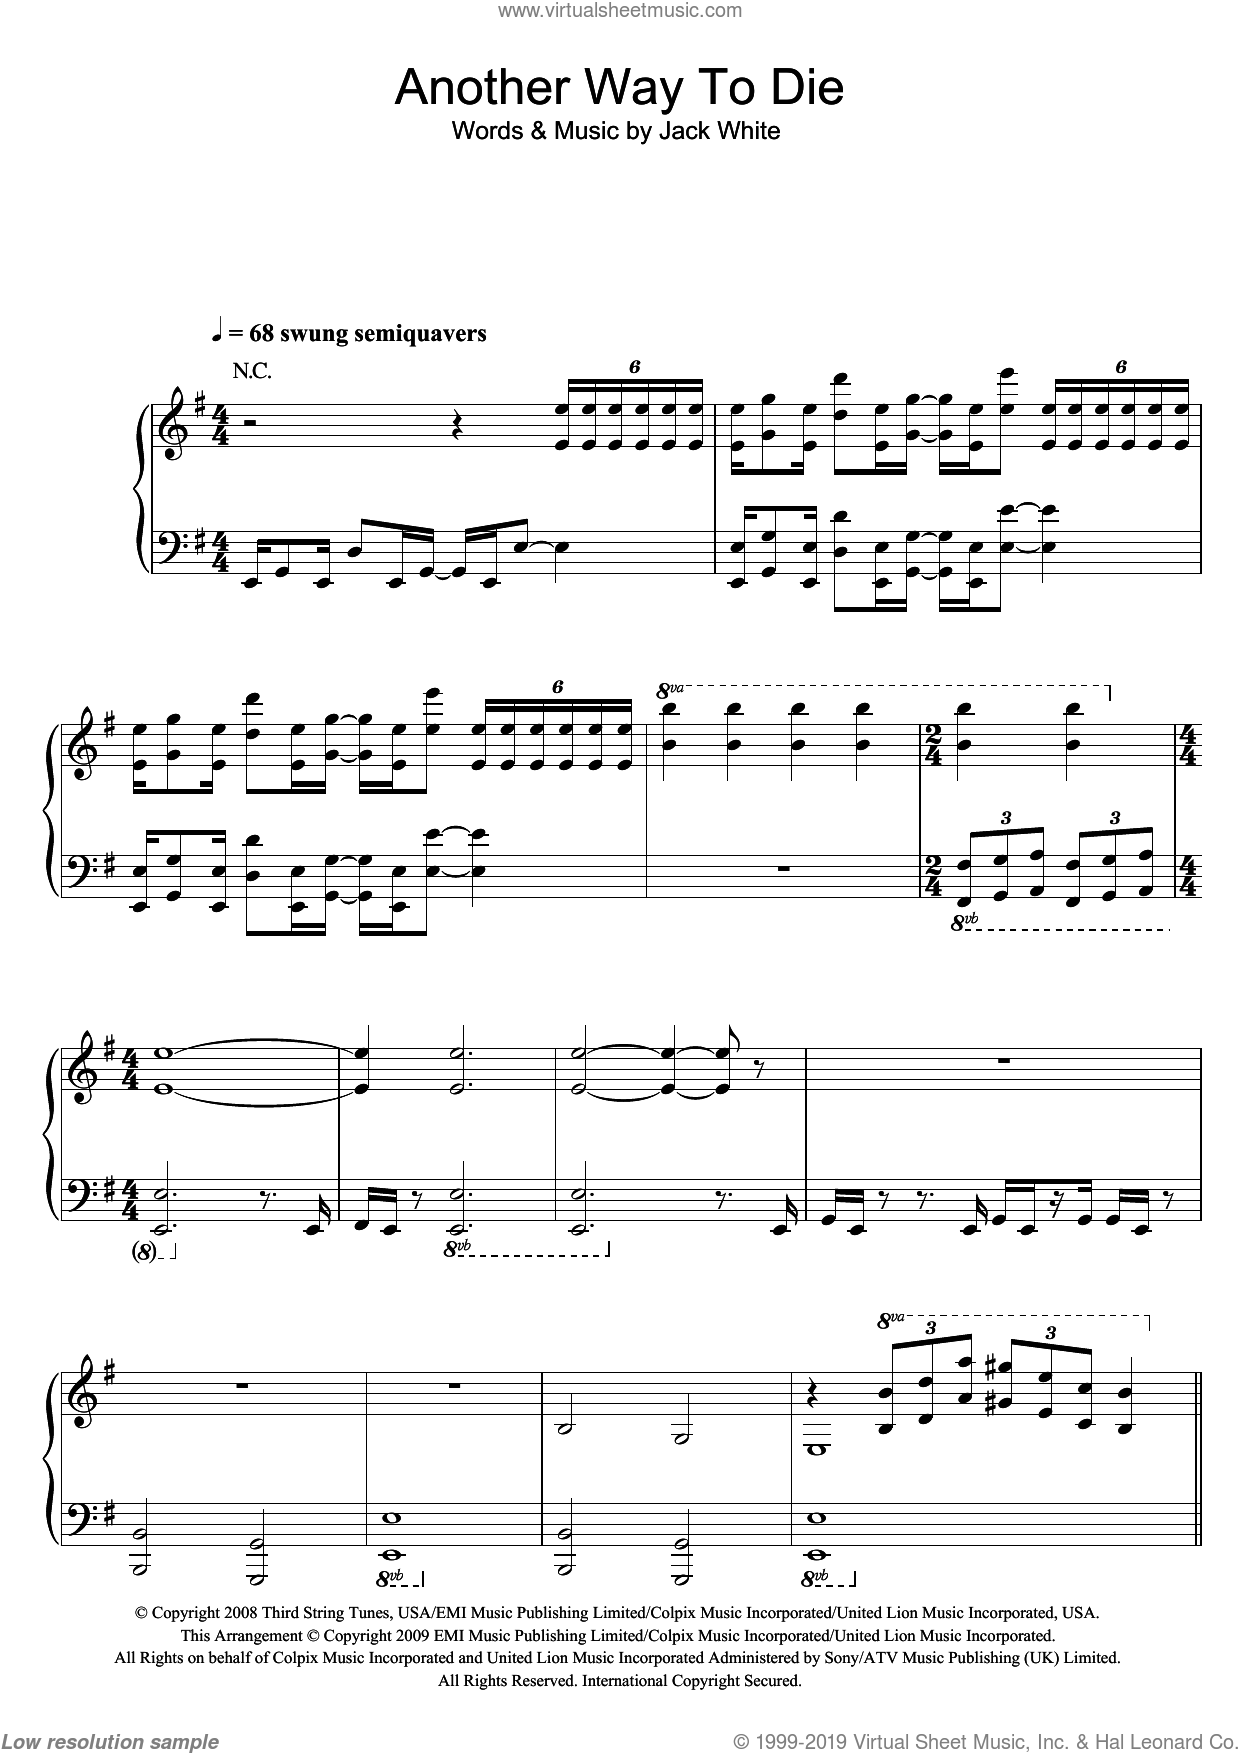 Another Way To Die (from James Bond: Quantum Of Solace) sheet music for voice, piano or guitar by Jack White & Alicia Keys, Alicia Keys and Jack White & Alicia Keys and Jack White, intermediate skill level